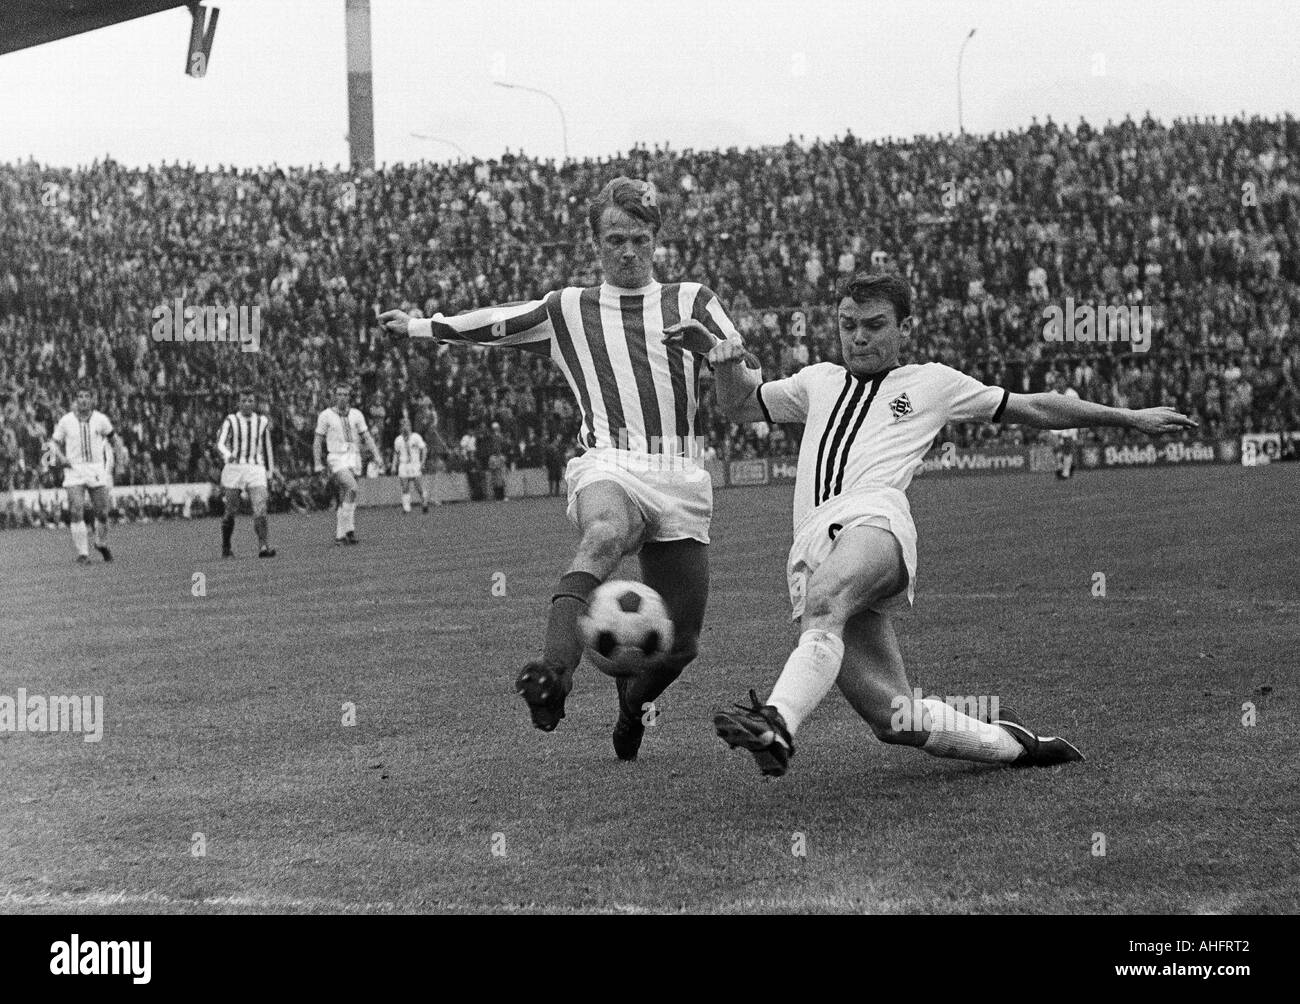 football, Bundesliga, 1967/1968, Boekelberg Stadium, Borussia Moenchengladbach versus 1. FC Cologne 1:0, scene of the match, duel between Karl Heinz Thielen (Koeln) left and Herbert Laumen (MG) - Stock Image